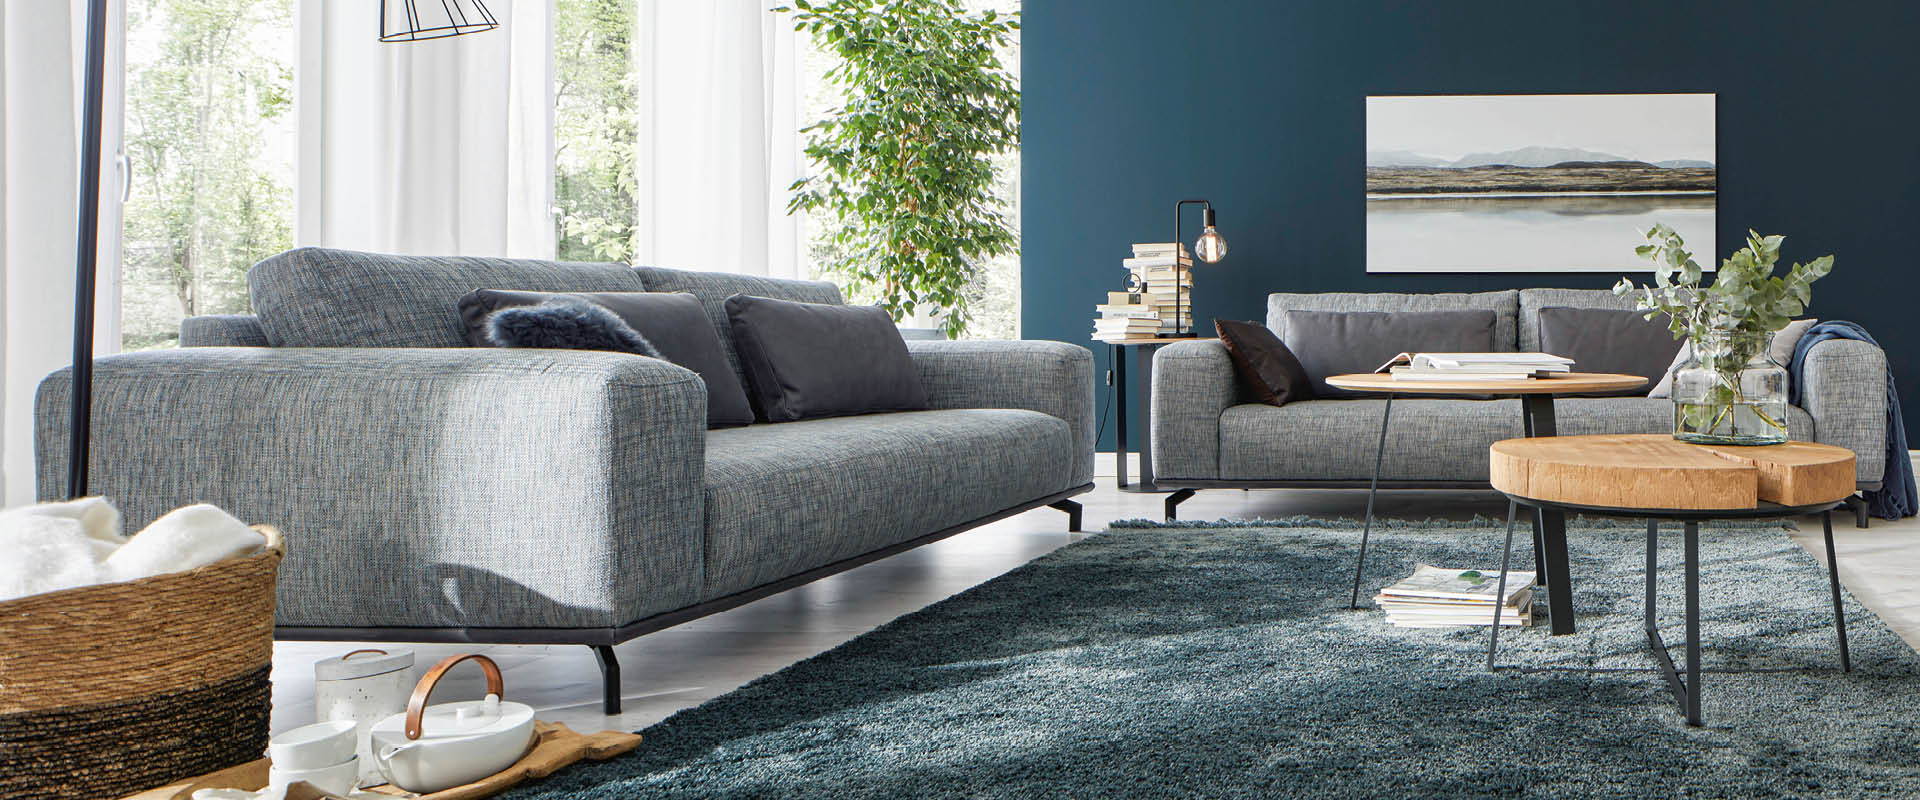 Full Size of Big Sofa Rundecke Sofas Couches Mbel Und Kchenprofis In Weiden Home Affaire Riess Ambiente Jugendzimmer Himolla Günstig Kaufen Sitzhöhe 55 Cm Mondo Husse Wohnzimmer Big Sofa Rundecke